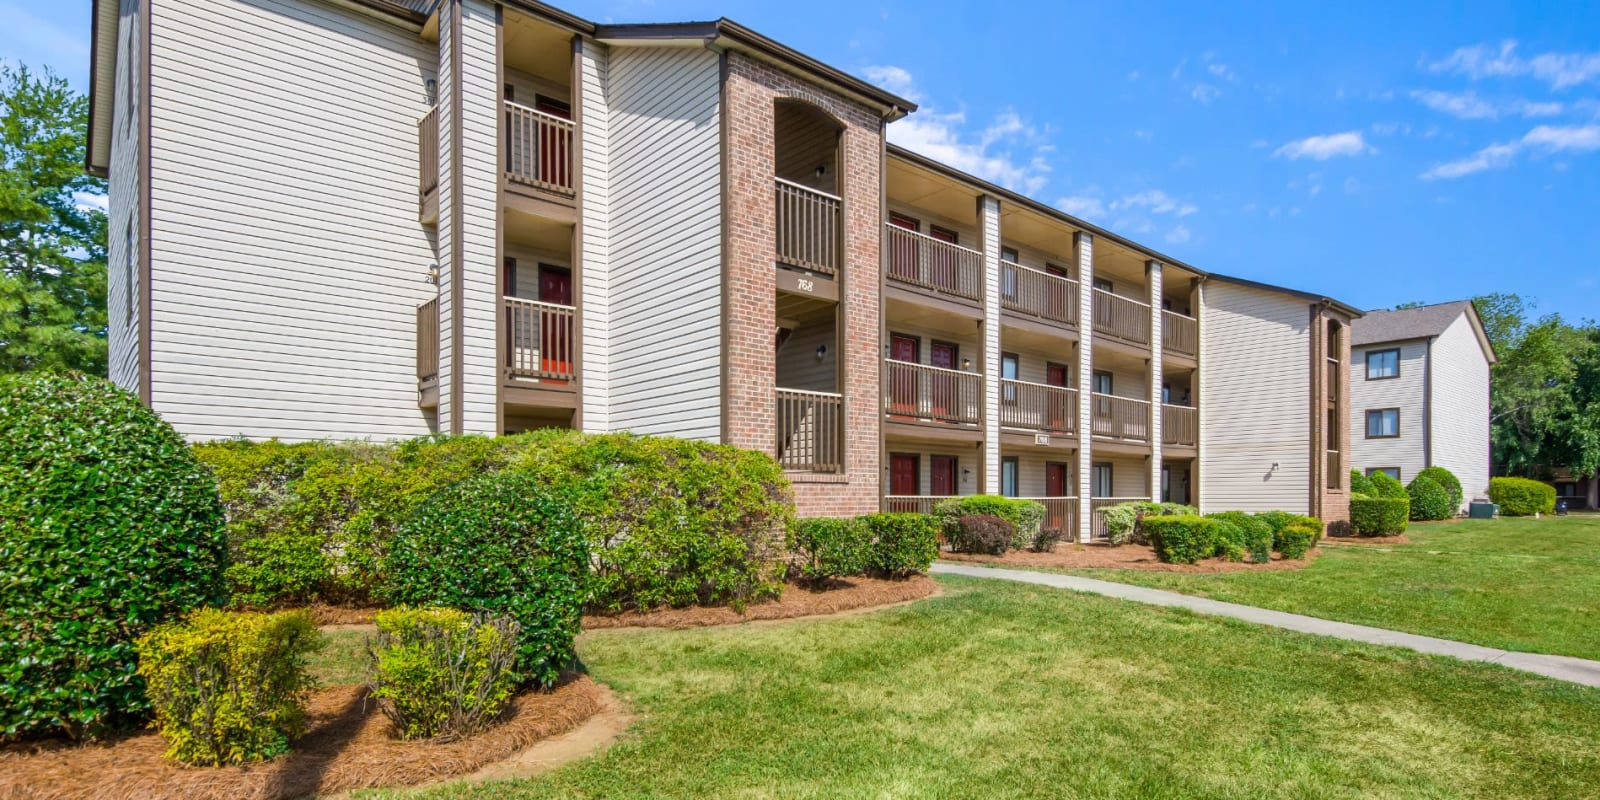 Exterior ground view of  Gable Oaks Apartment Homes in Rock Hill, South Carolina